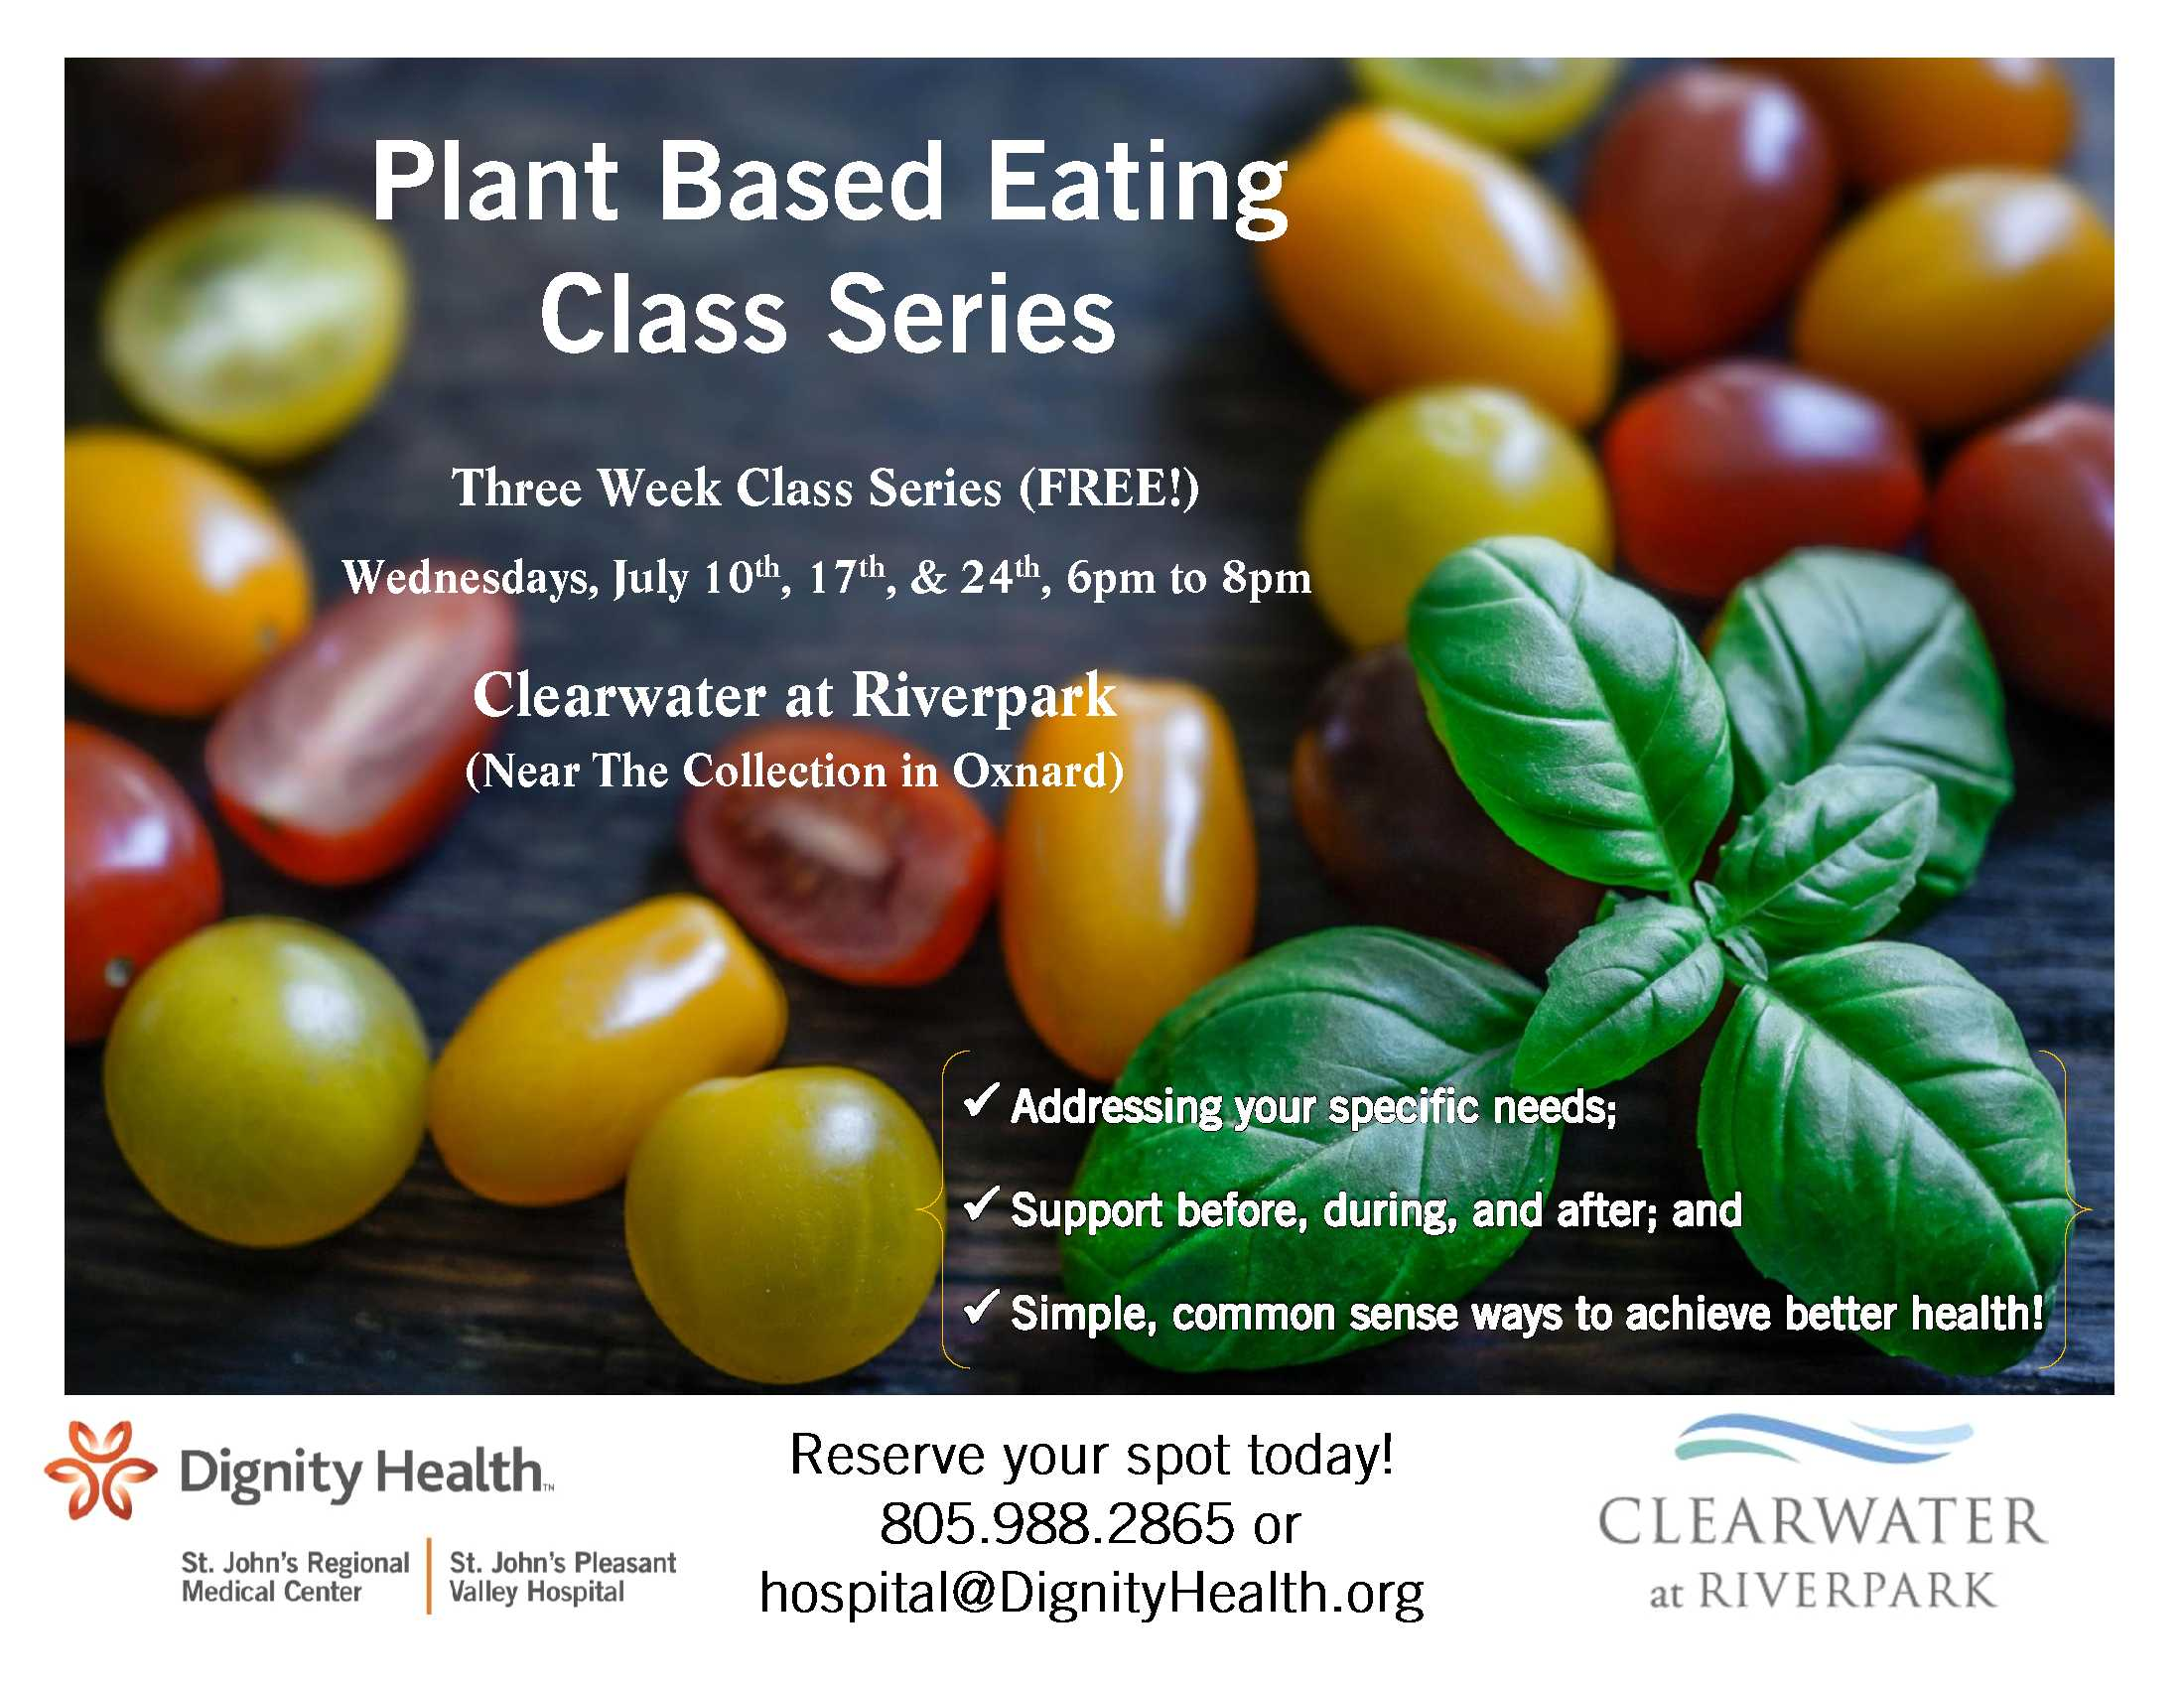 July 10 To 24 Plant Based Class Series Clearwater